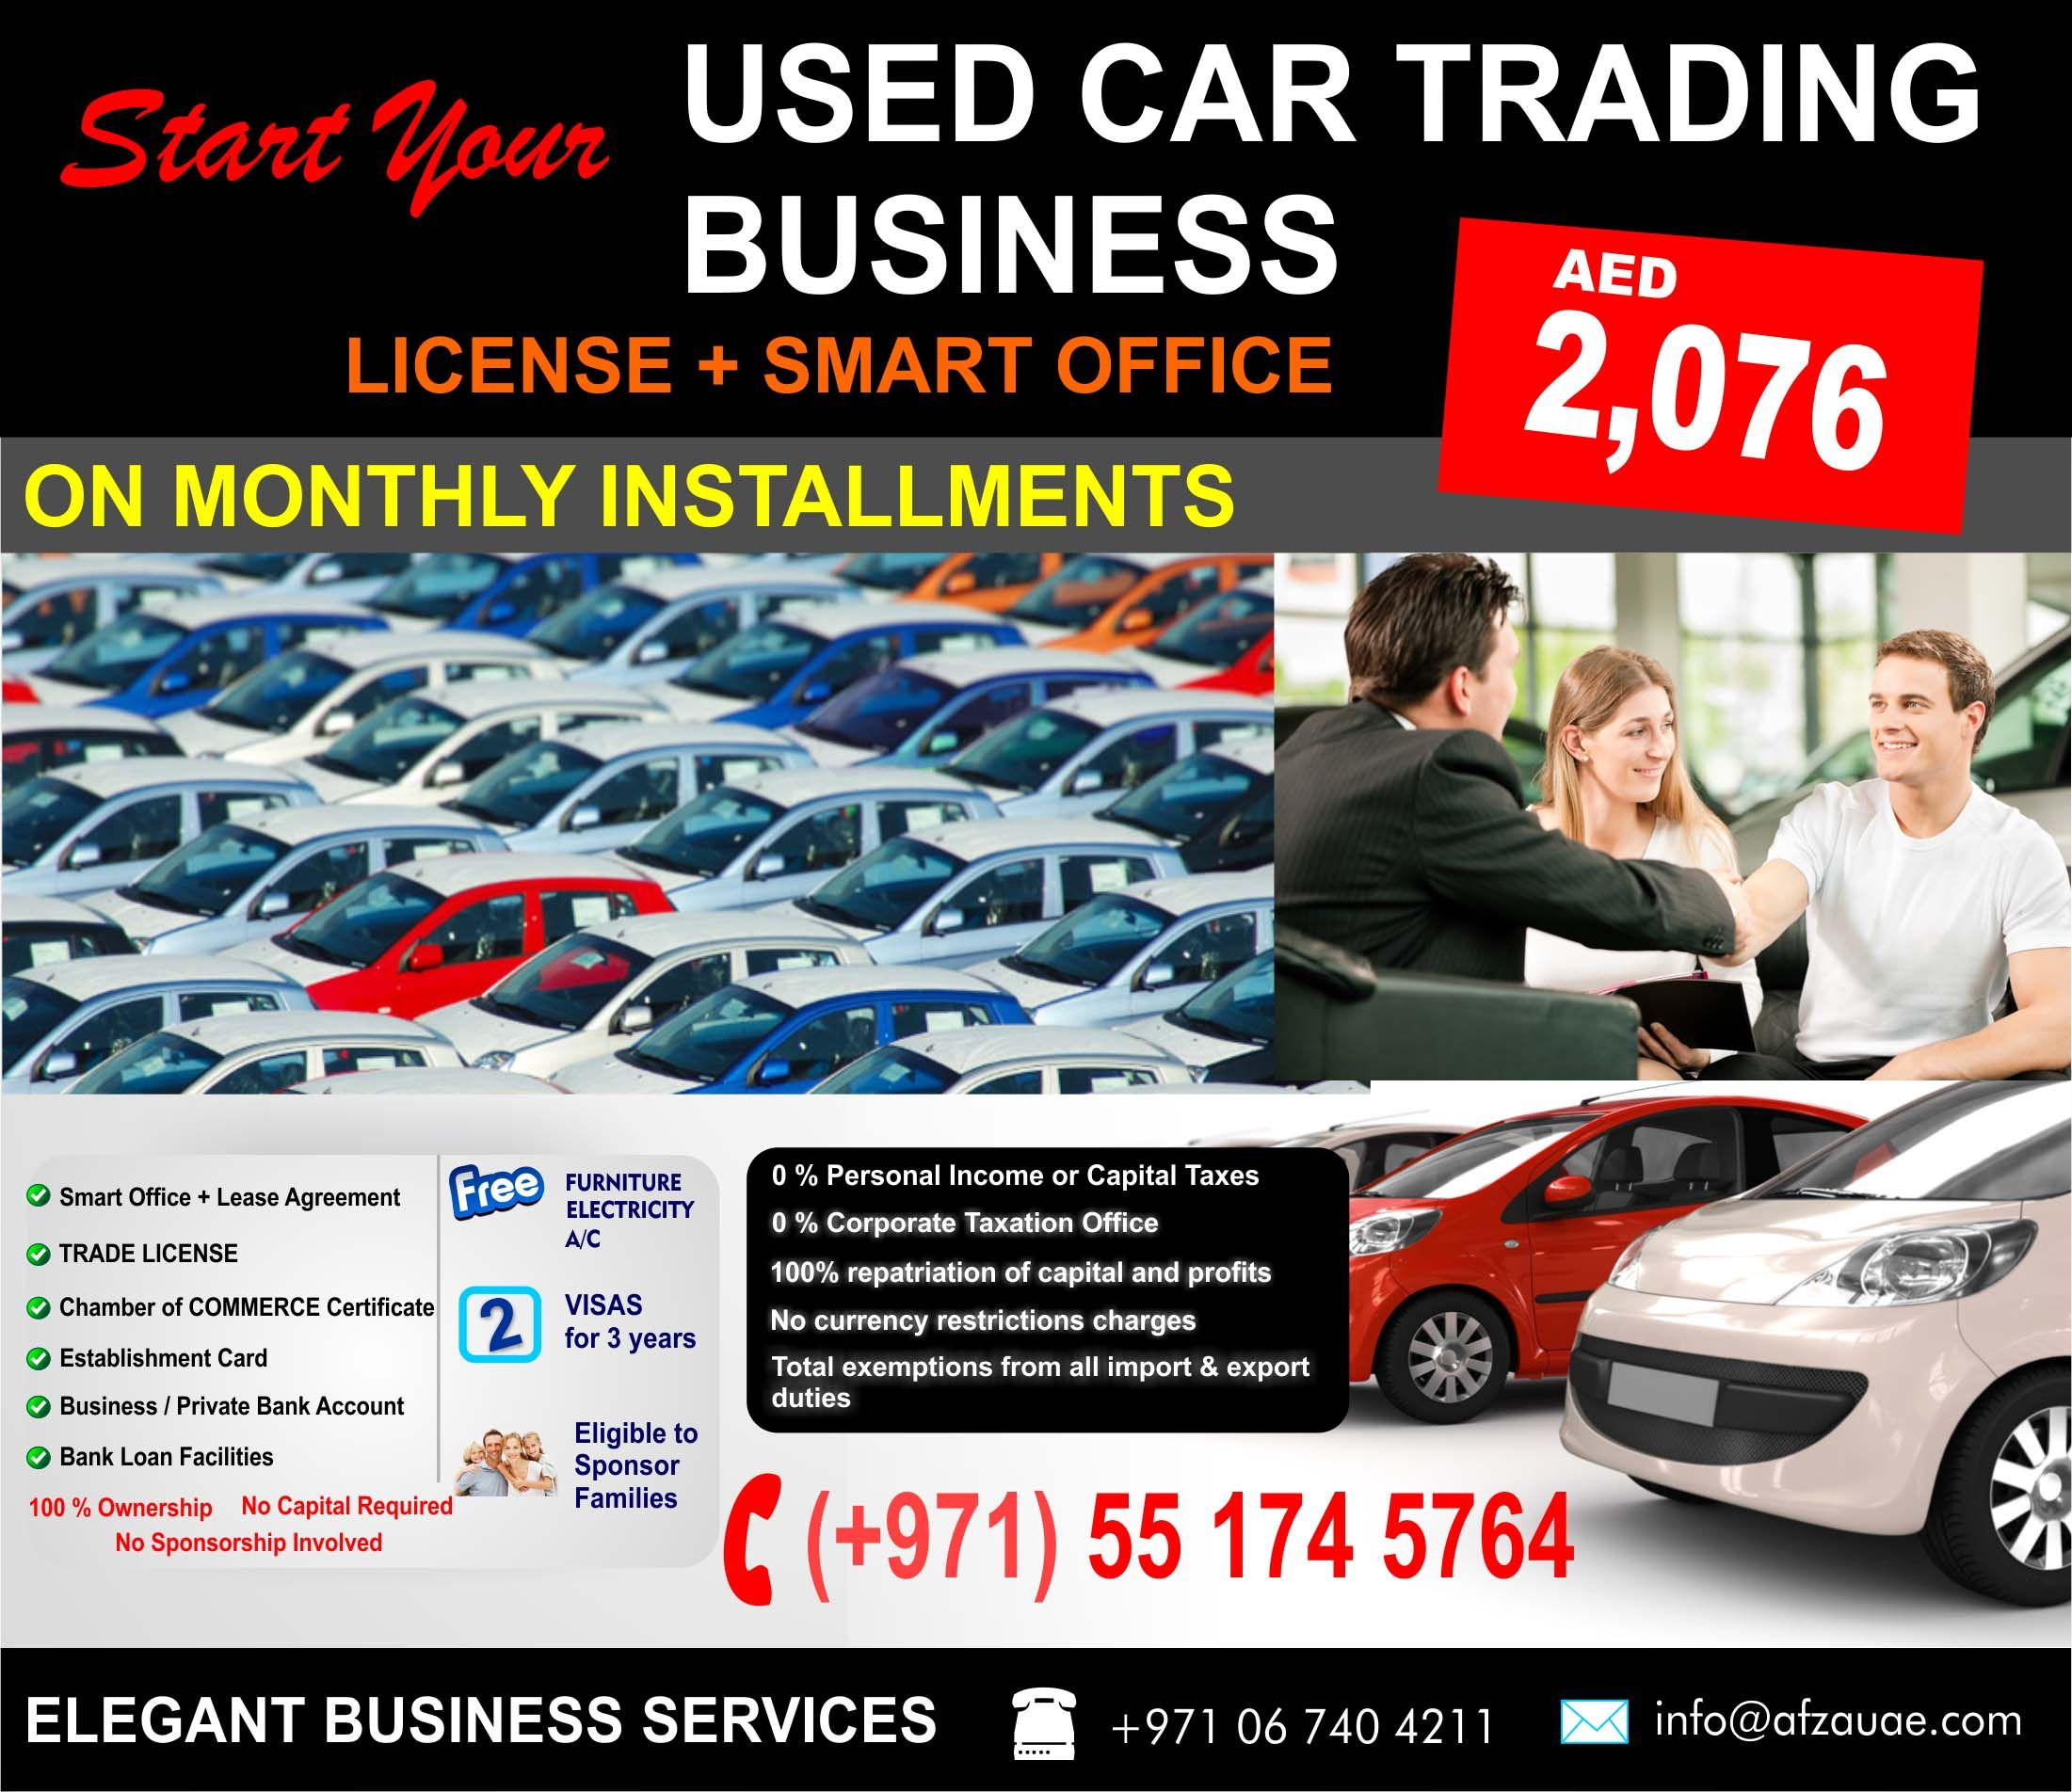 Start Your New Business Used Car Service License In Uae On Monthly